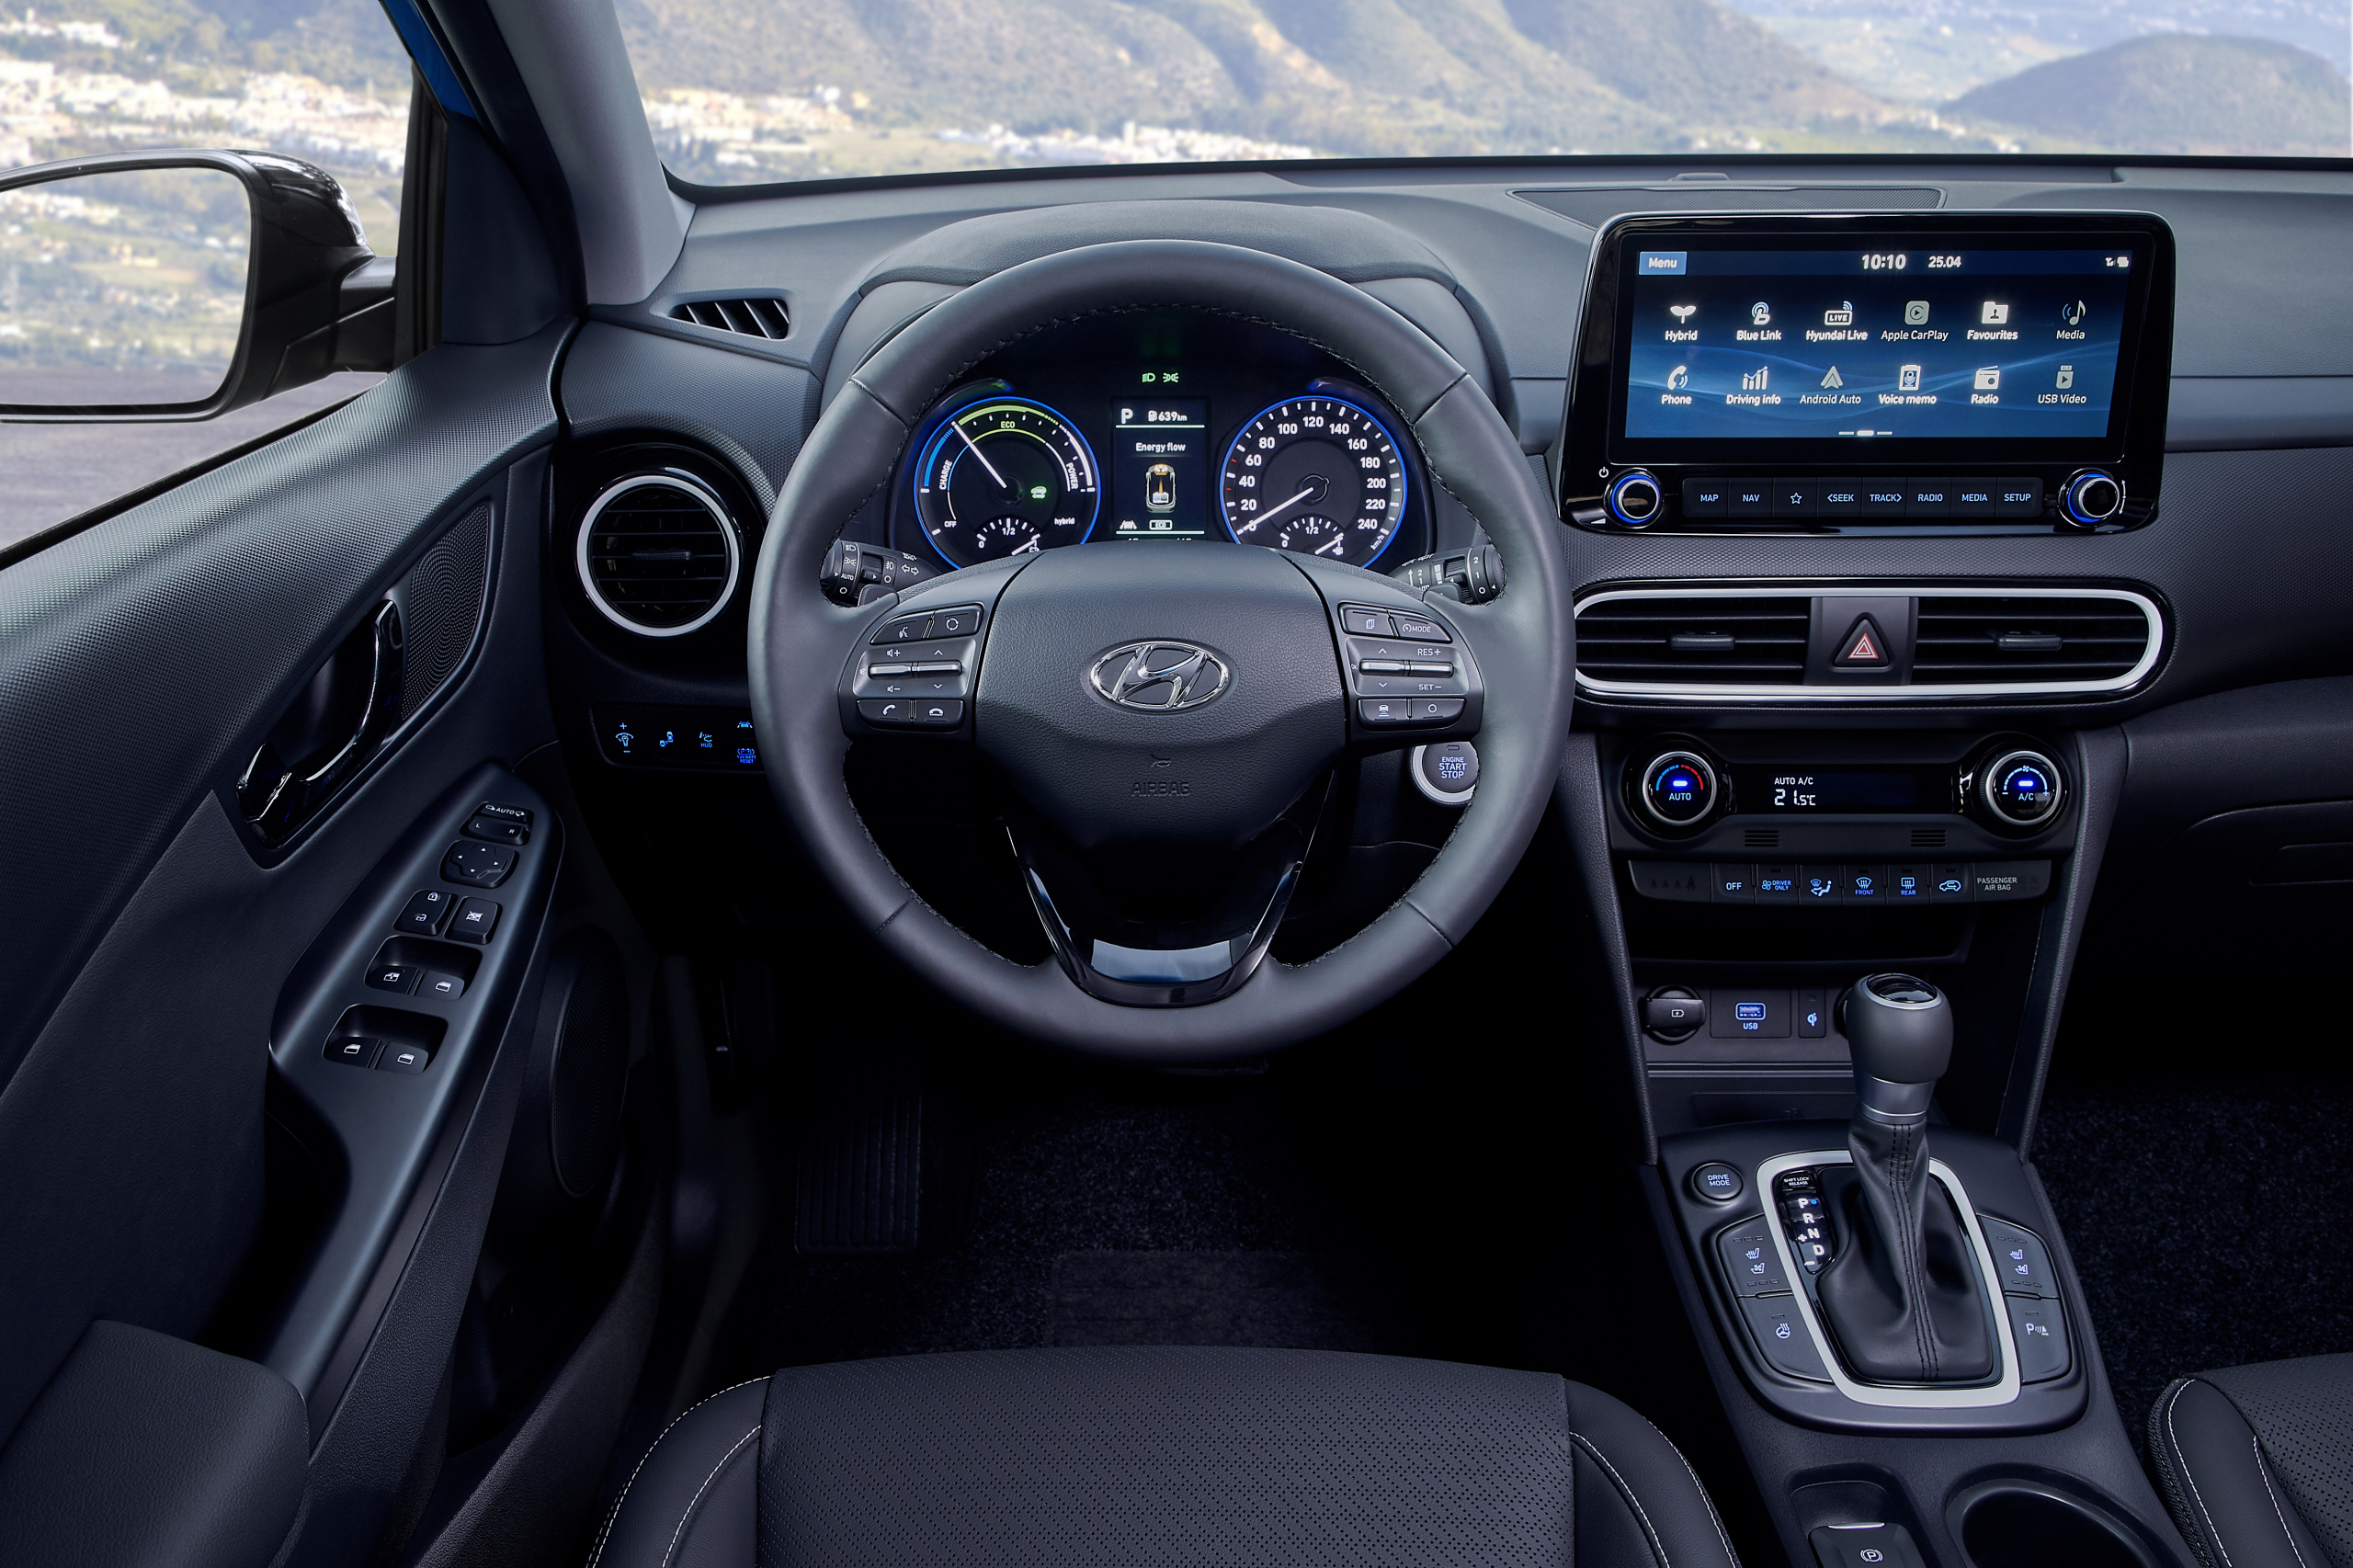 All-New Kona Hybrid interior (2).jpg